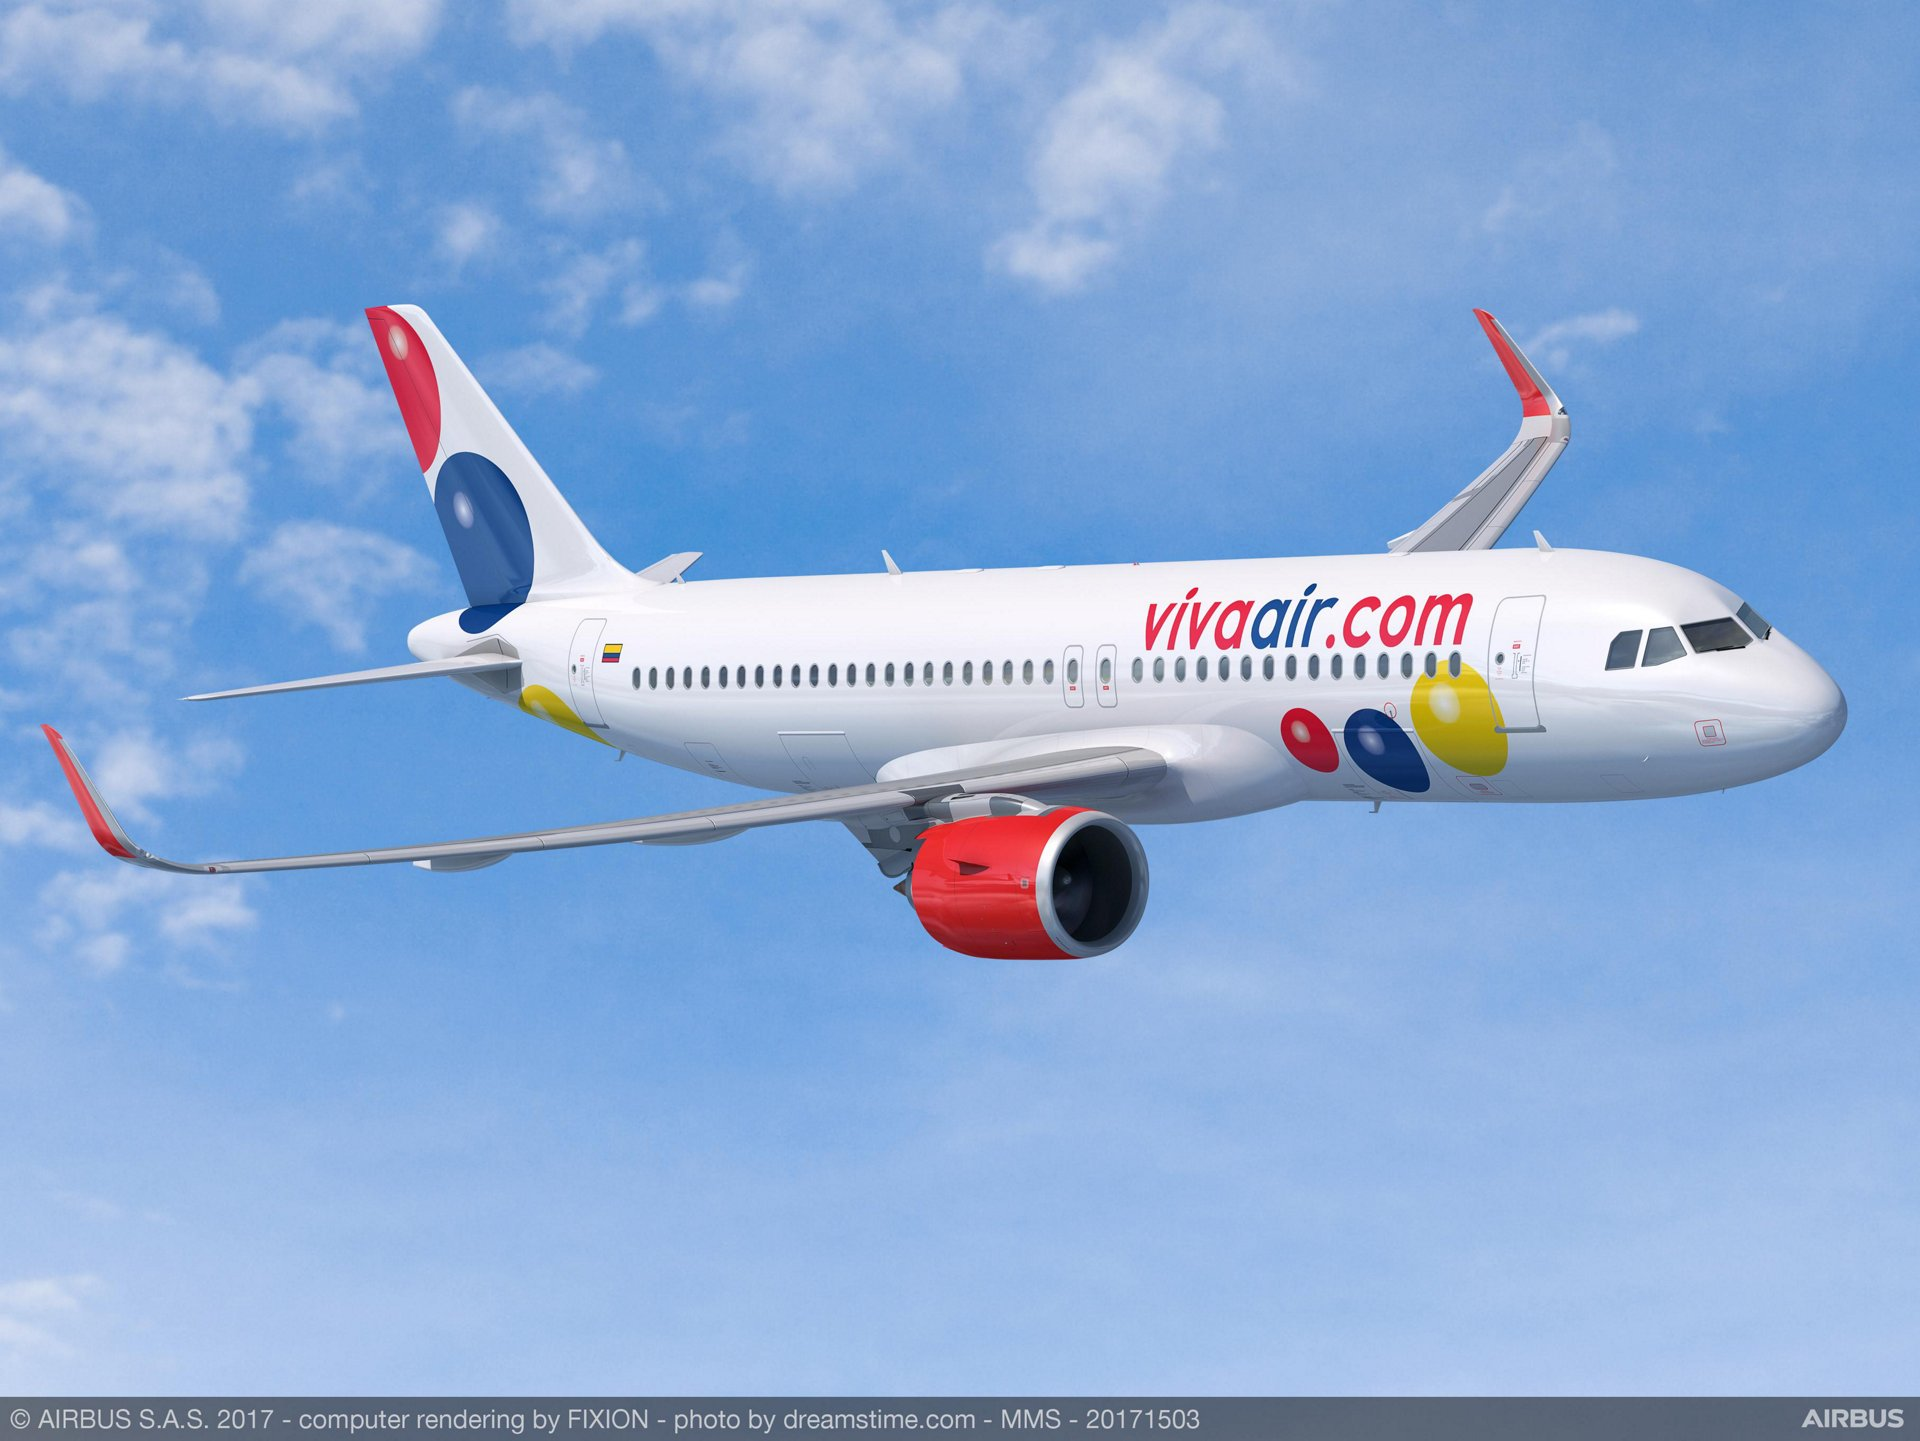 Viva Air, the Latin America low cost carrier group owned by Irelandia Aviation, signed a Memorandum of Understanding (MoU) with Airbus for 50 A320 Family aircraft, comprising 35 A320neo and 15 A320ceo.